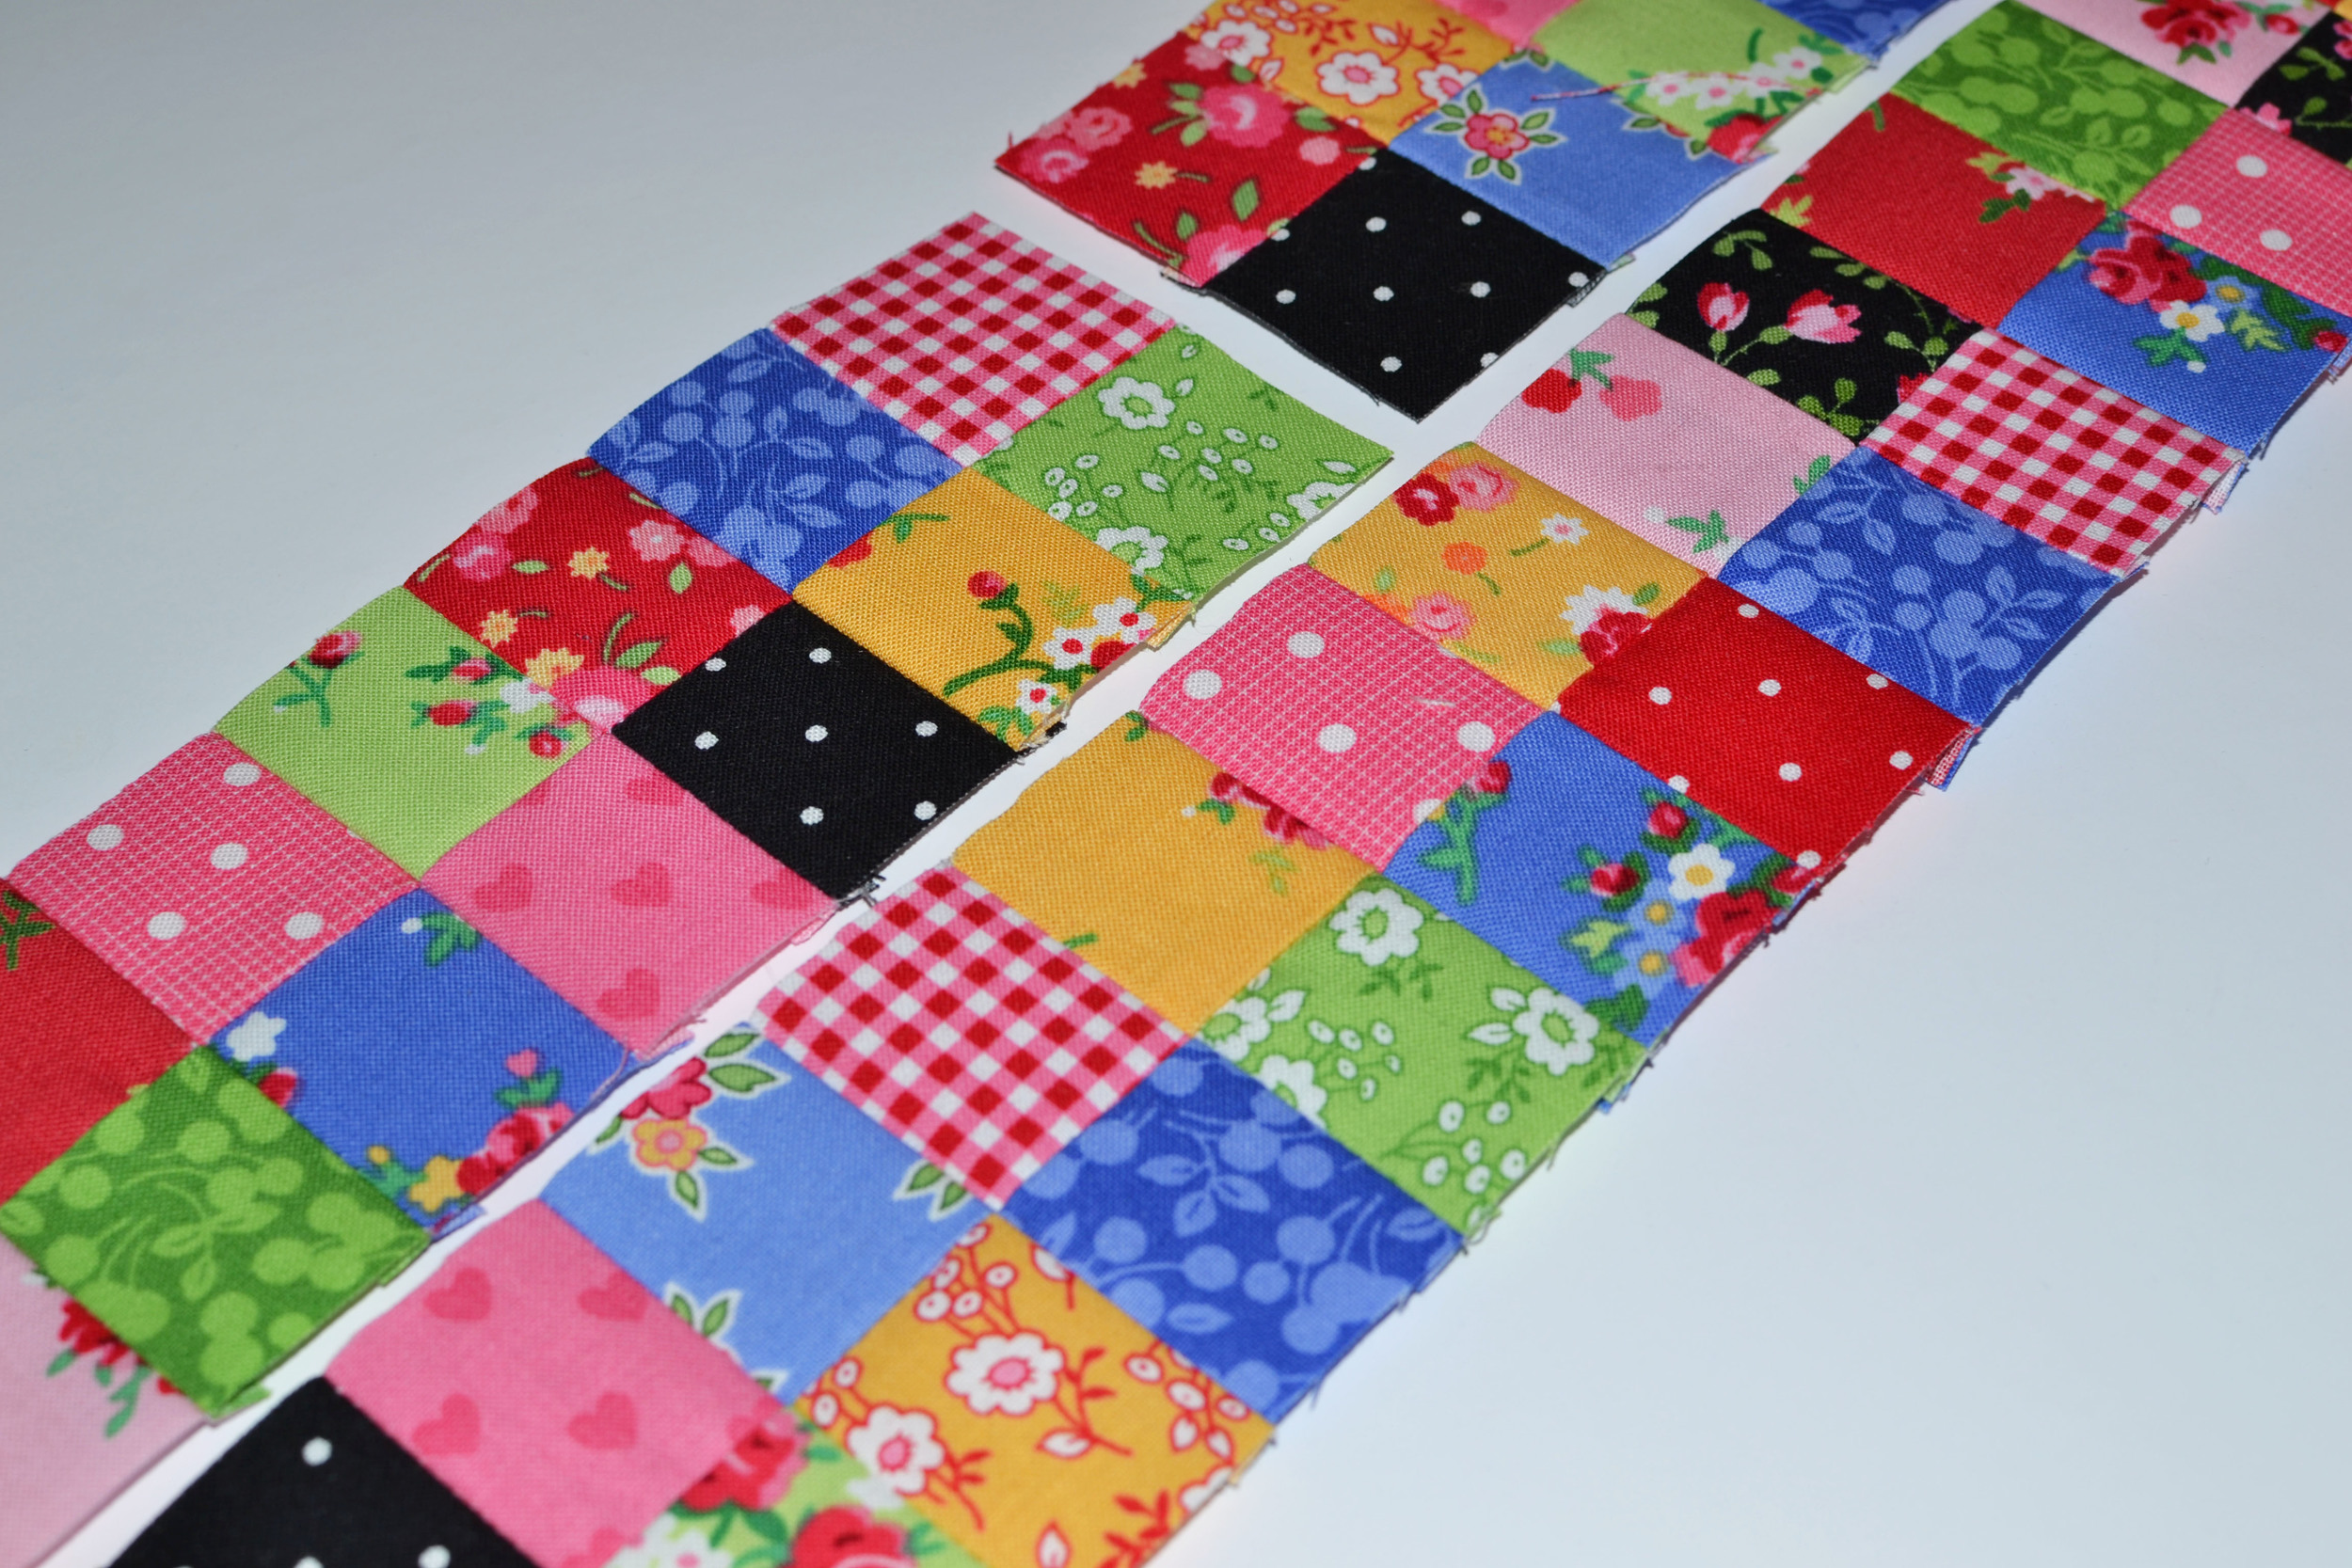 quilty fun four patches 056 edit.jpg